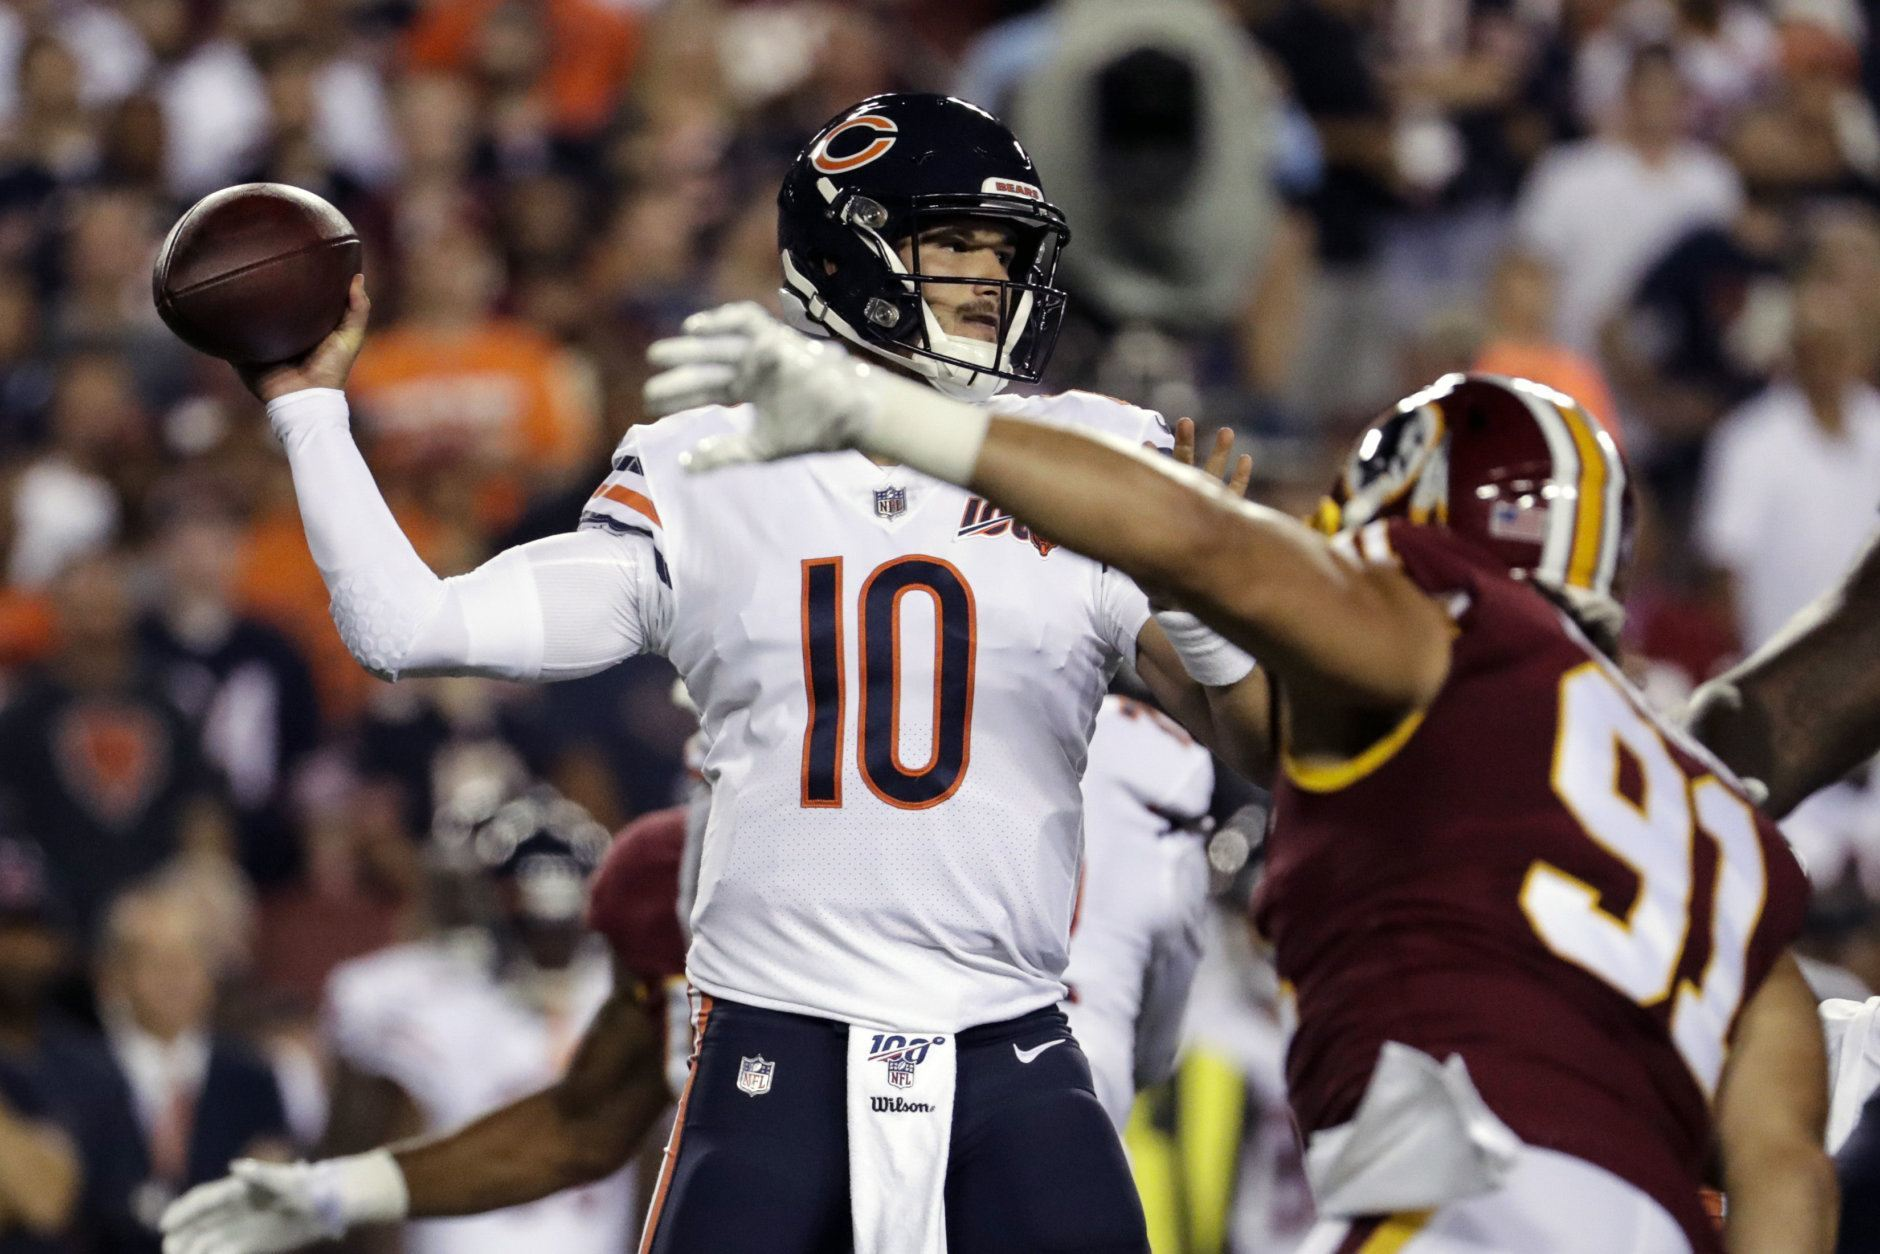 Chicago Bears quarterback Mitchell Trubisky (10) looks to pass under pressure from Washington Redskins outside linebacker Ryan Kerrigan (91) during the first half of an NFL football game Monday, Sept. 23, 2019, in Landover, Md. (AP Photo/Julio Cortez)